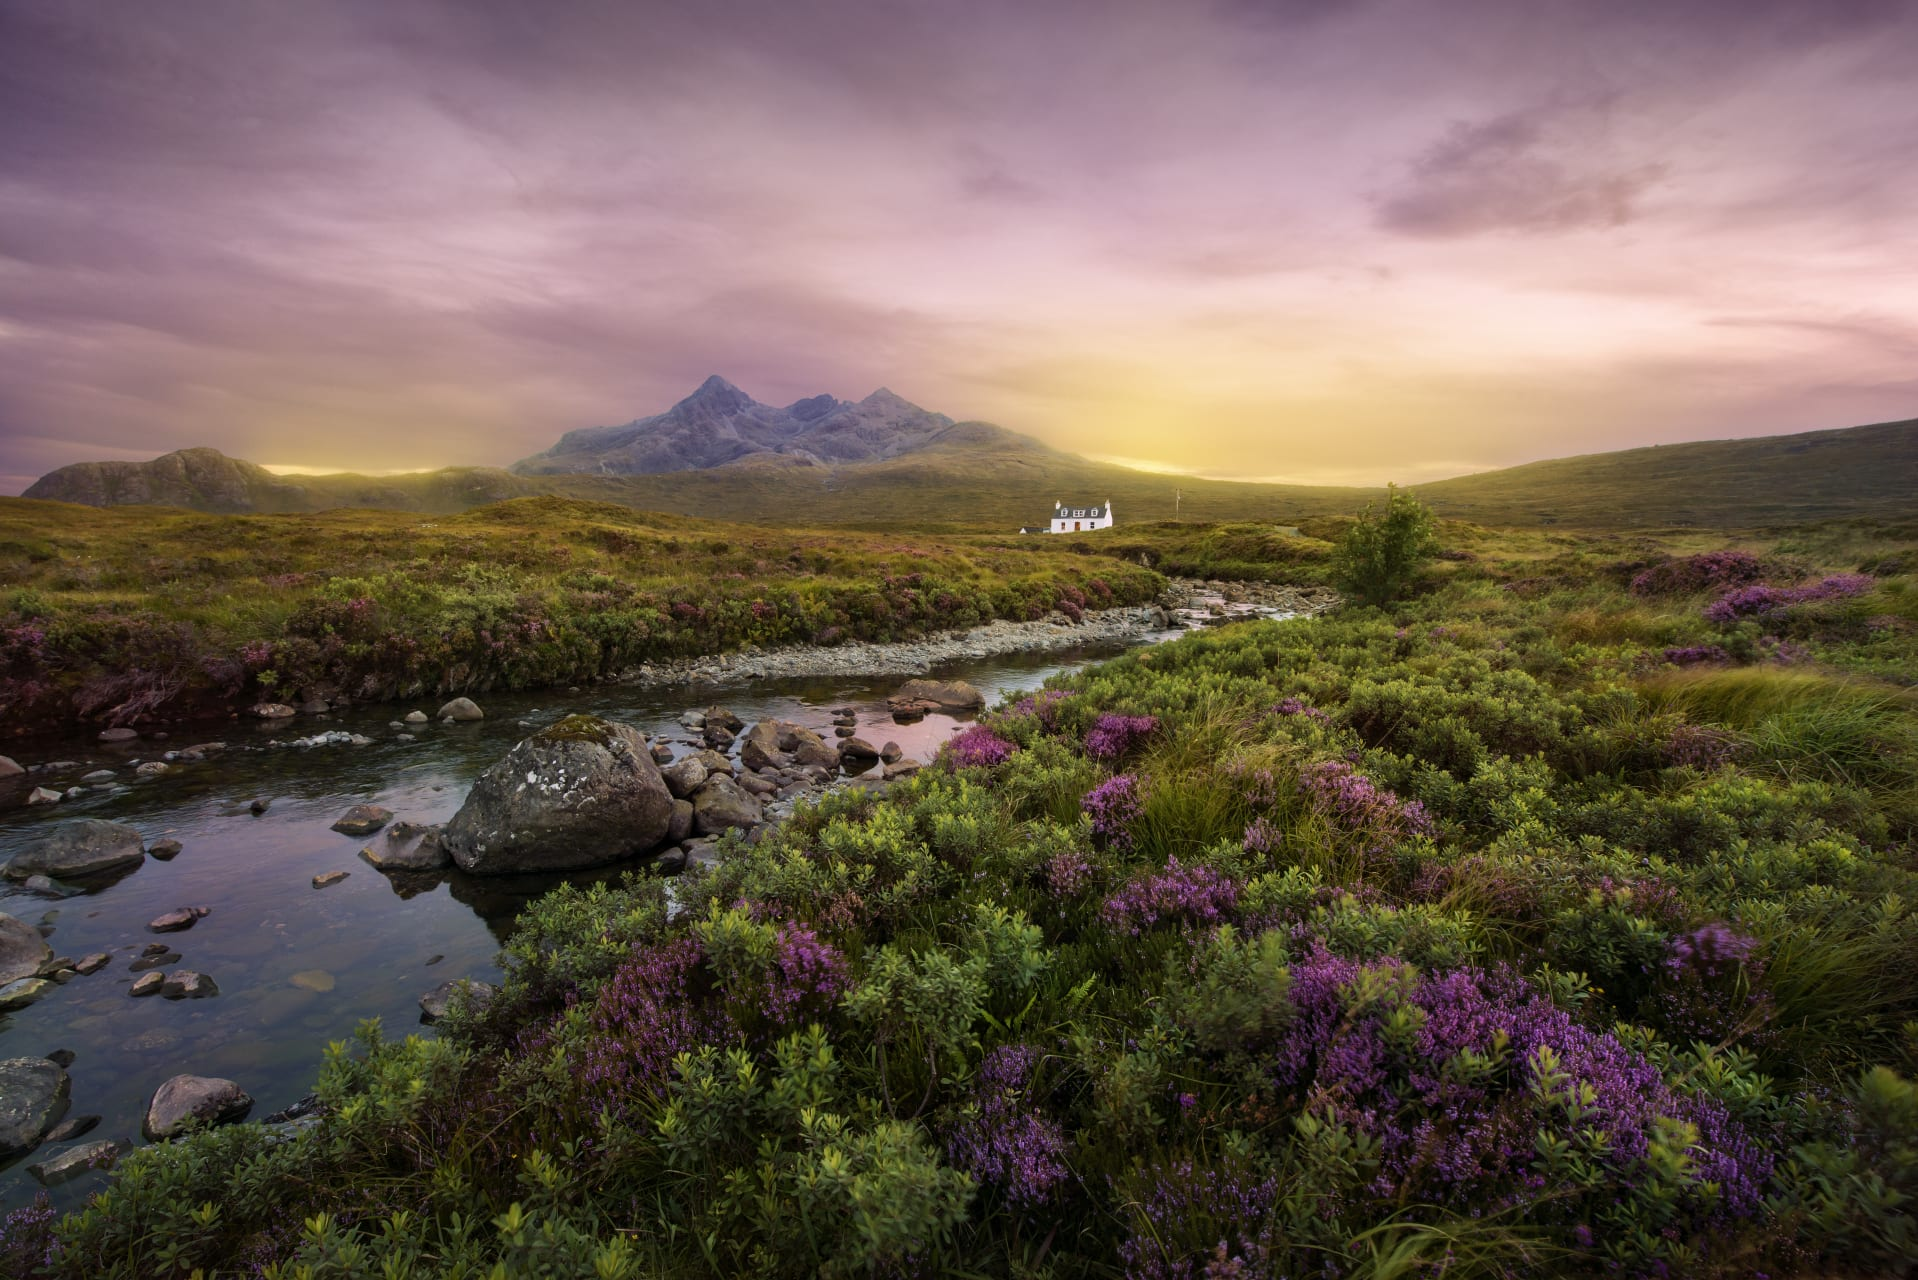 The Scottish Highlands - Storytime with Craig: Tales from Across Scotland